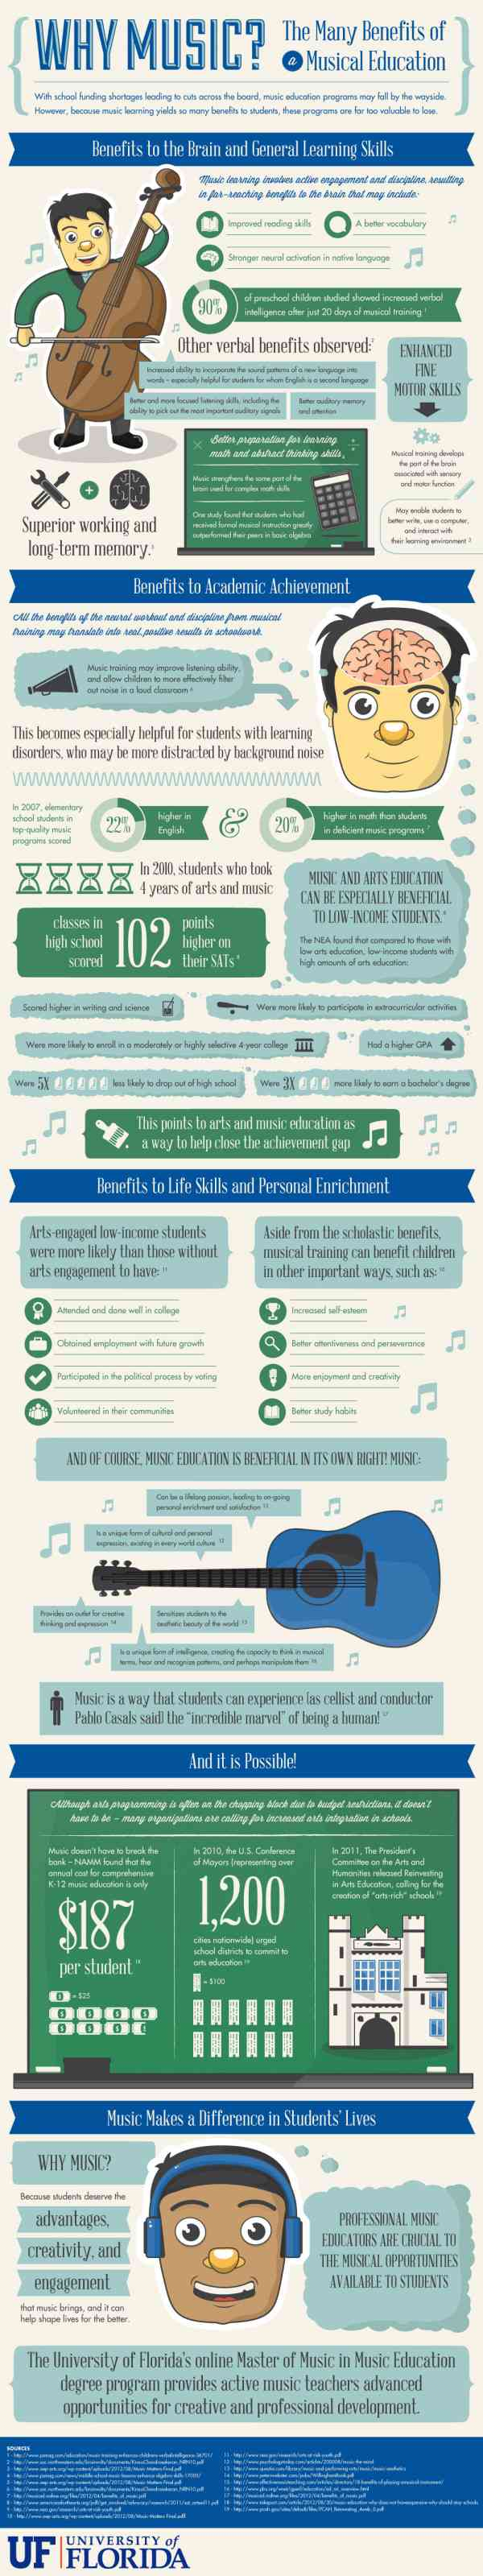 Infographic on the benefits of music! Why-te12